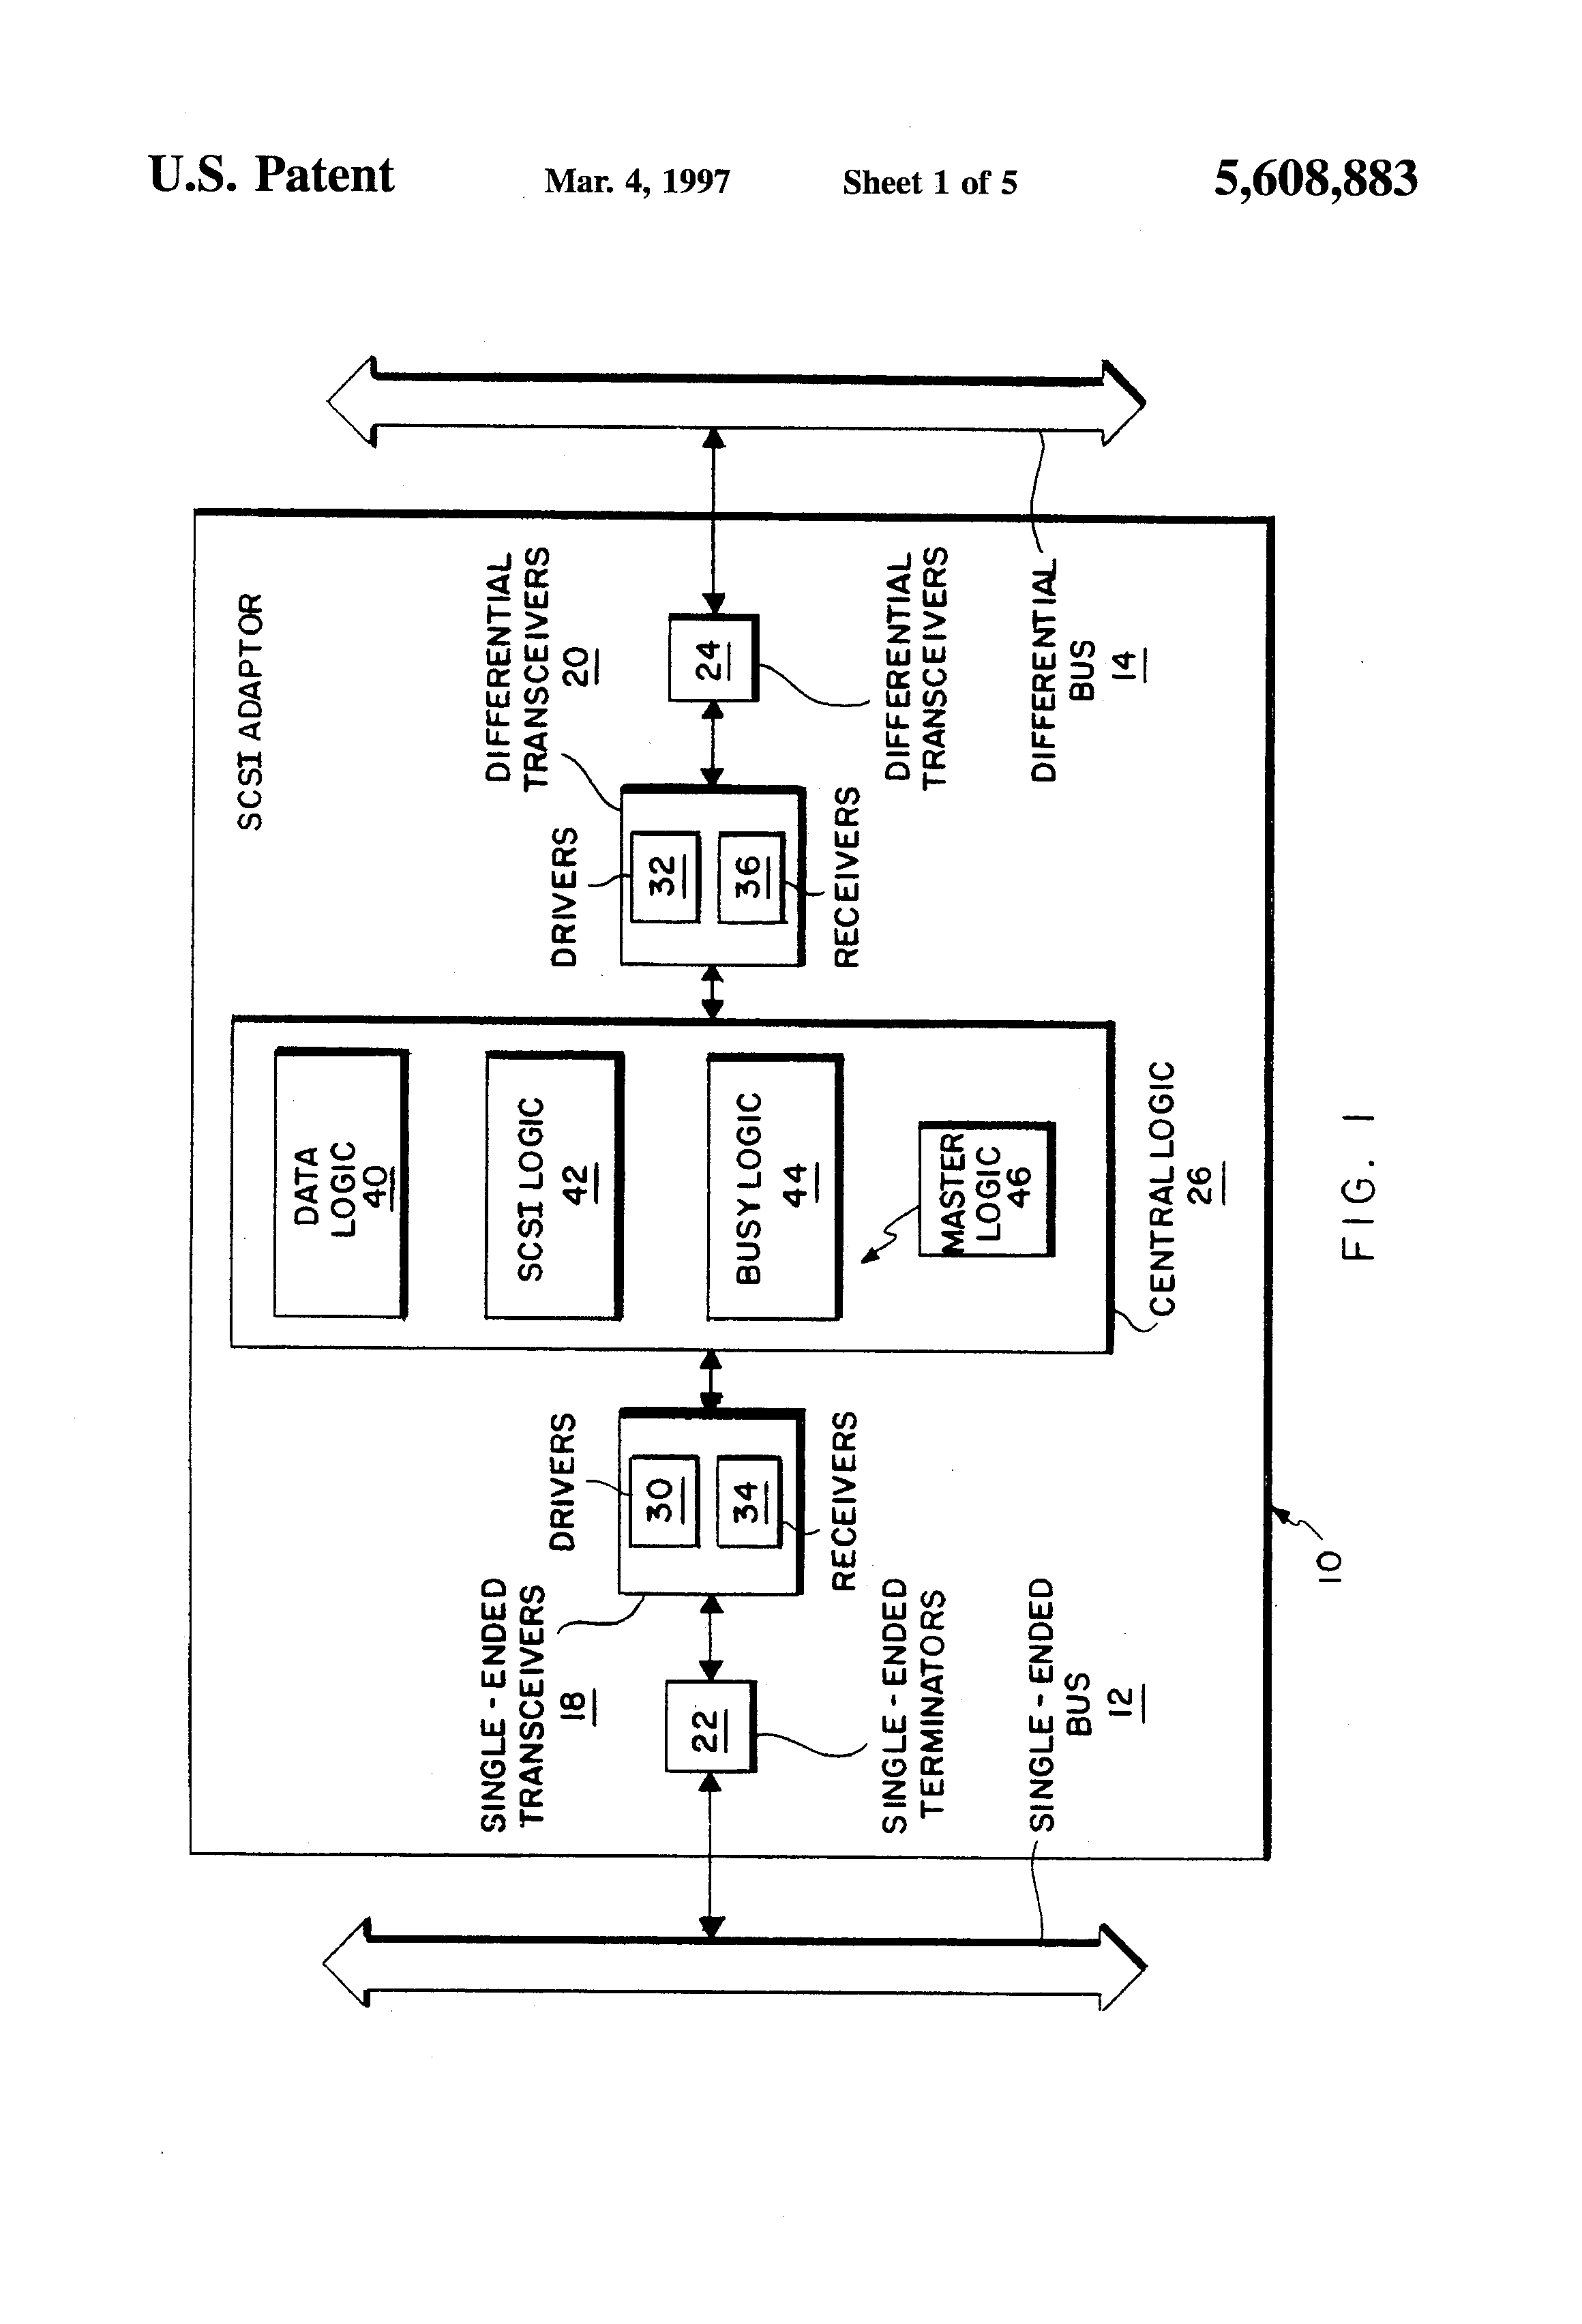 Us5608883 Adapter For Interconnecting Single Ended Scsi Wiring Diagram Patent Drawing